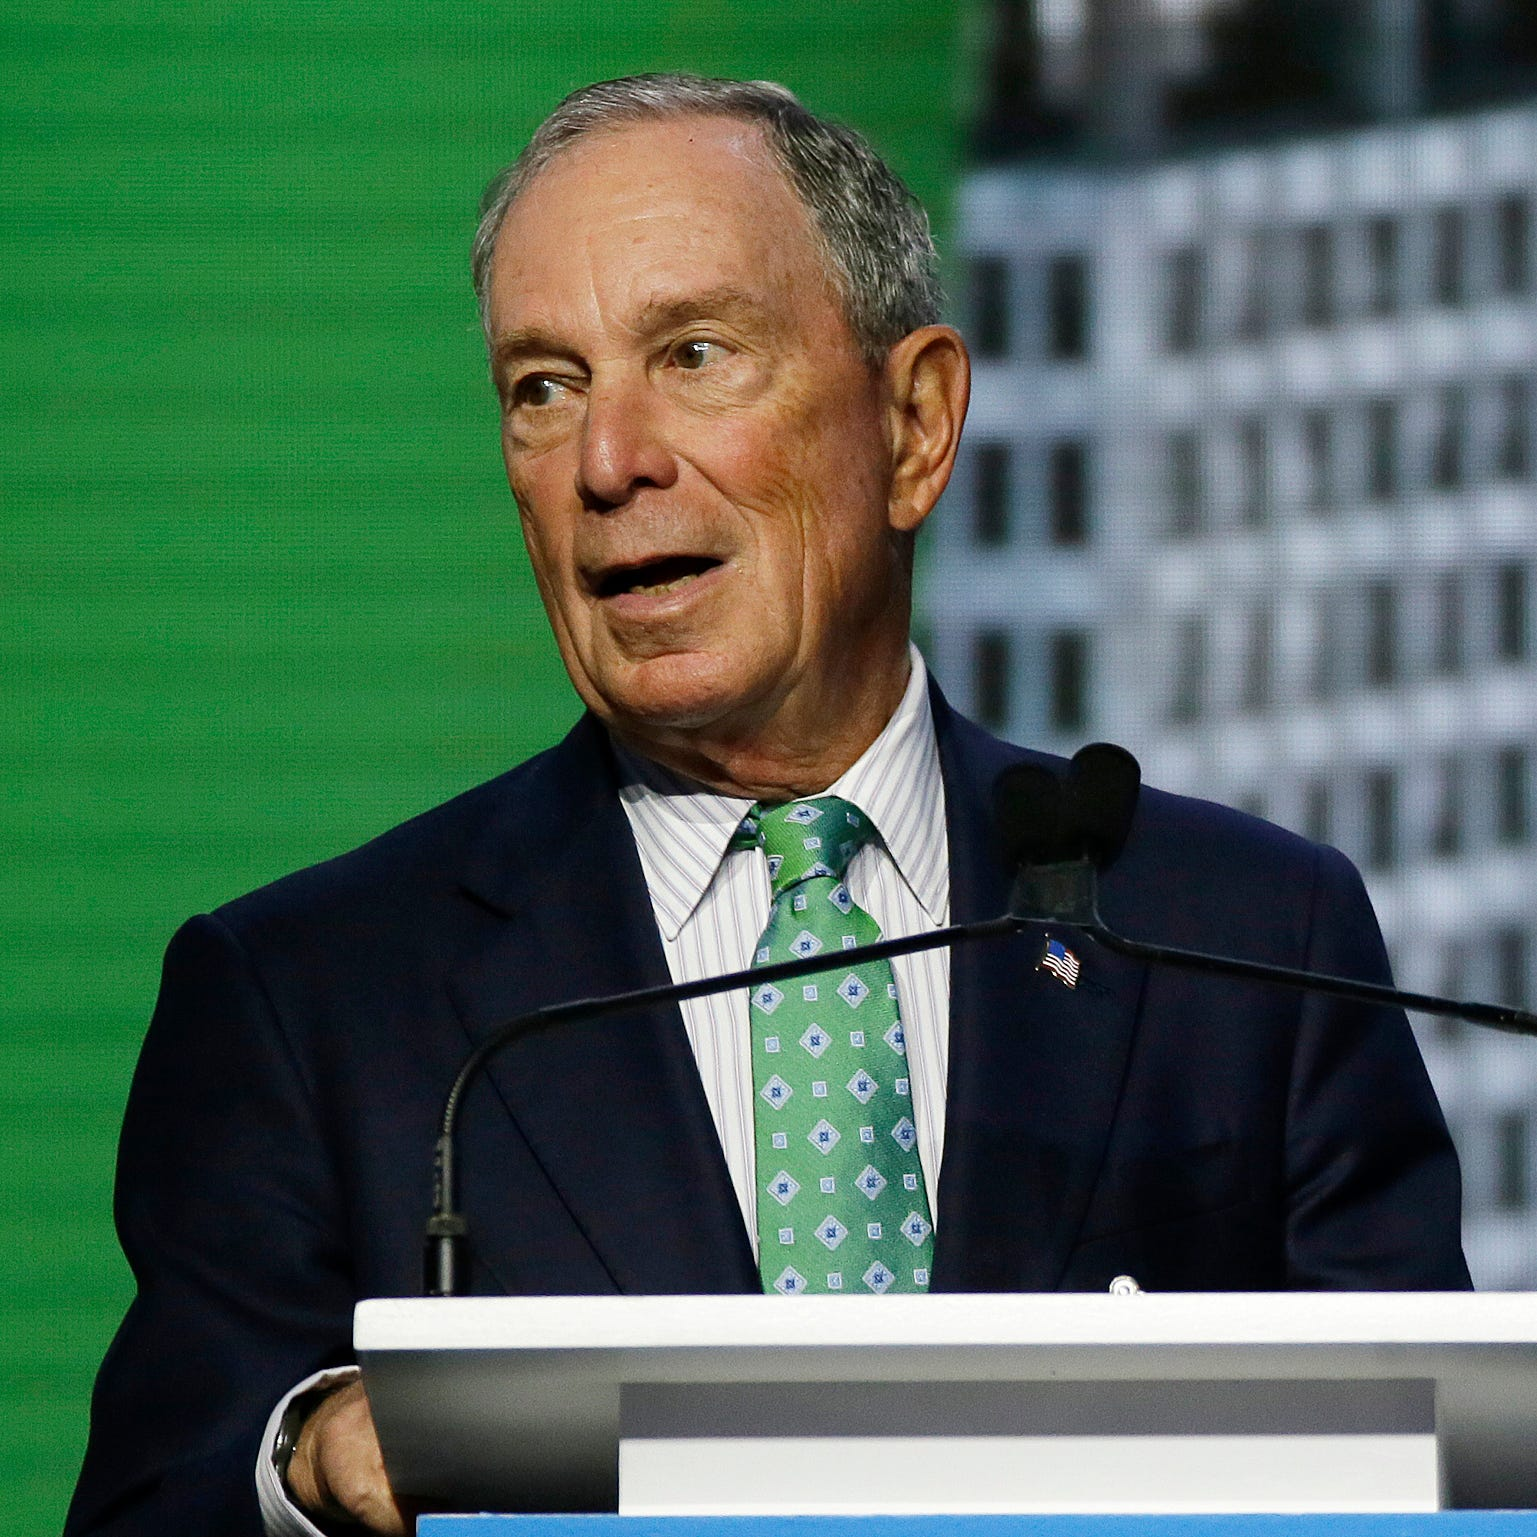 Michael Bloomberg: Why I'm coming to Iowa